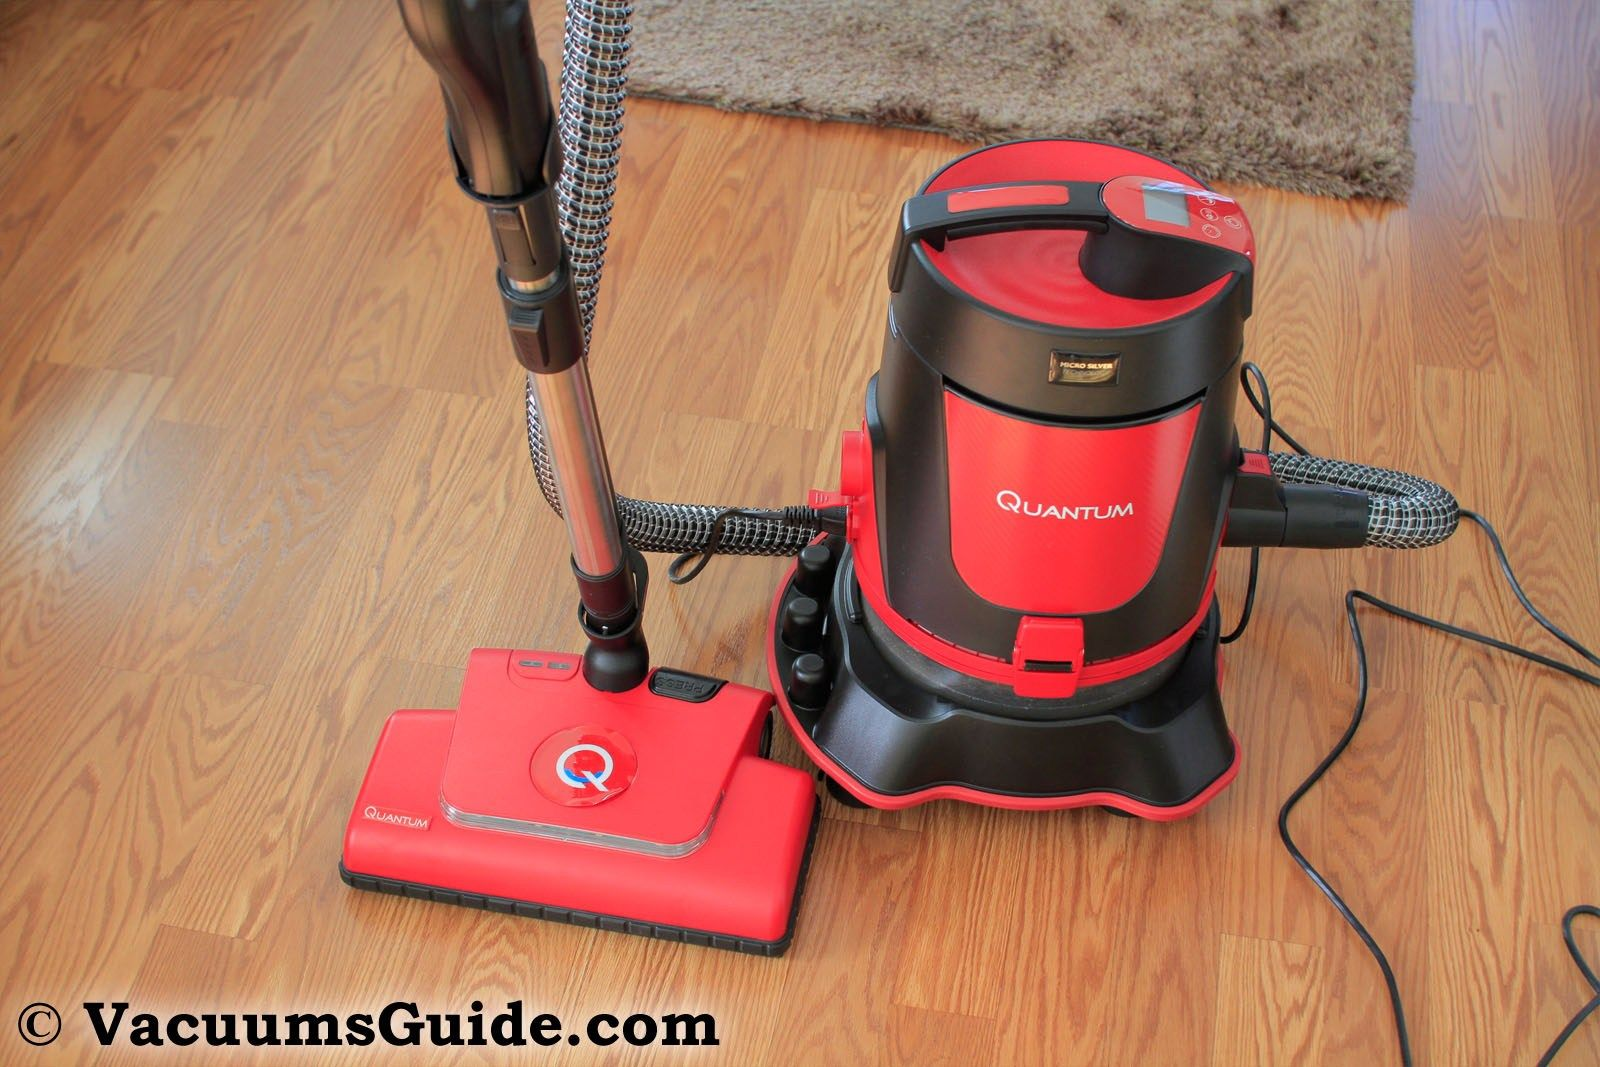 Sebo vacuum cleaners at bed bath and beyond - Quantum Vac Vs Rainbow System Which Is The Best Vacuum Cleaner With Water Filtration